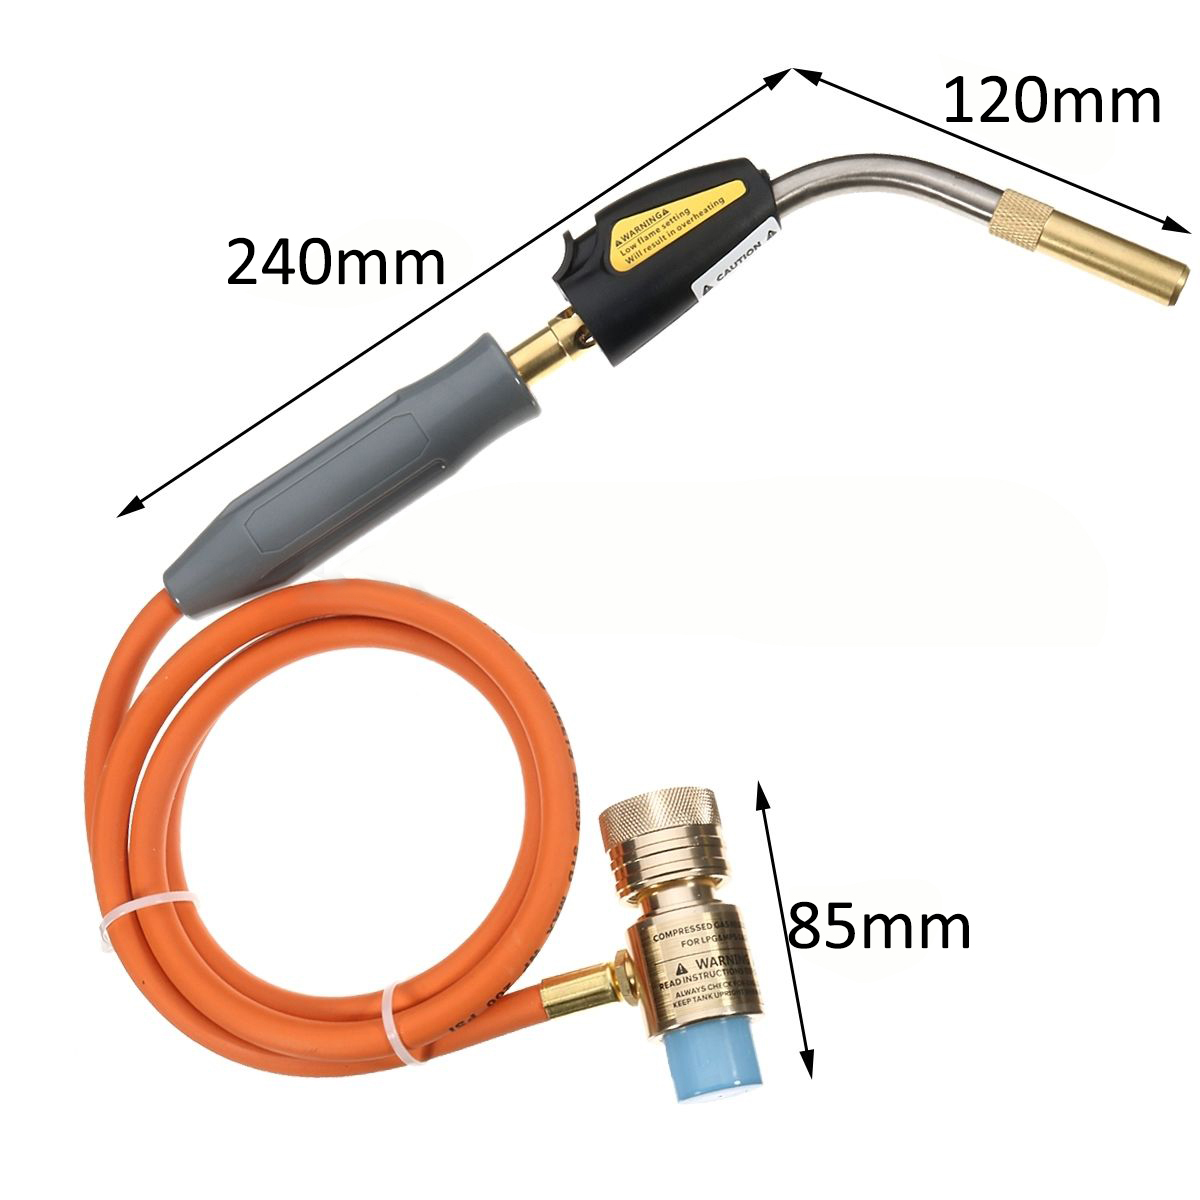 Mayitr Gas Self Igniting Turbo Torch With Hose Solder Propane Welding Torches for Plumbing Air Condition Heating Refrigeration  цены